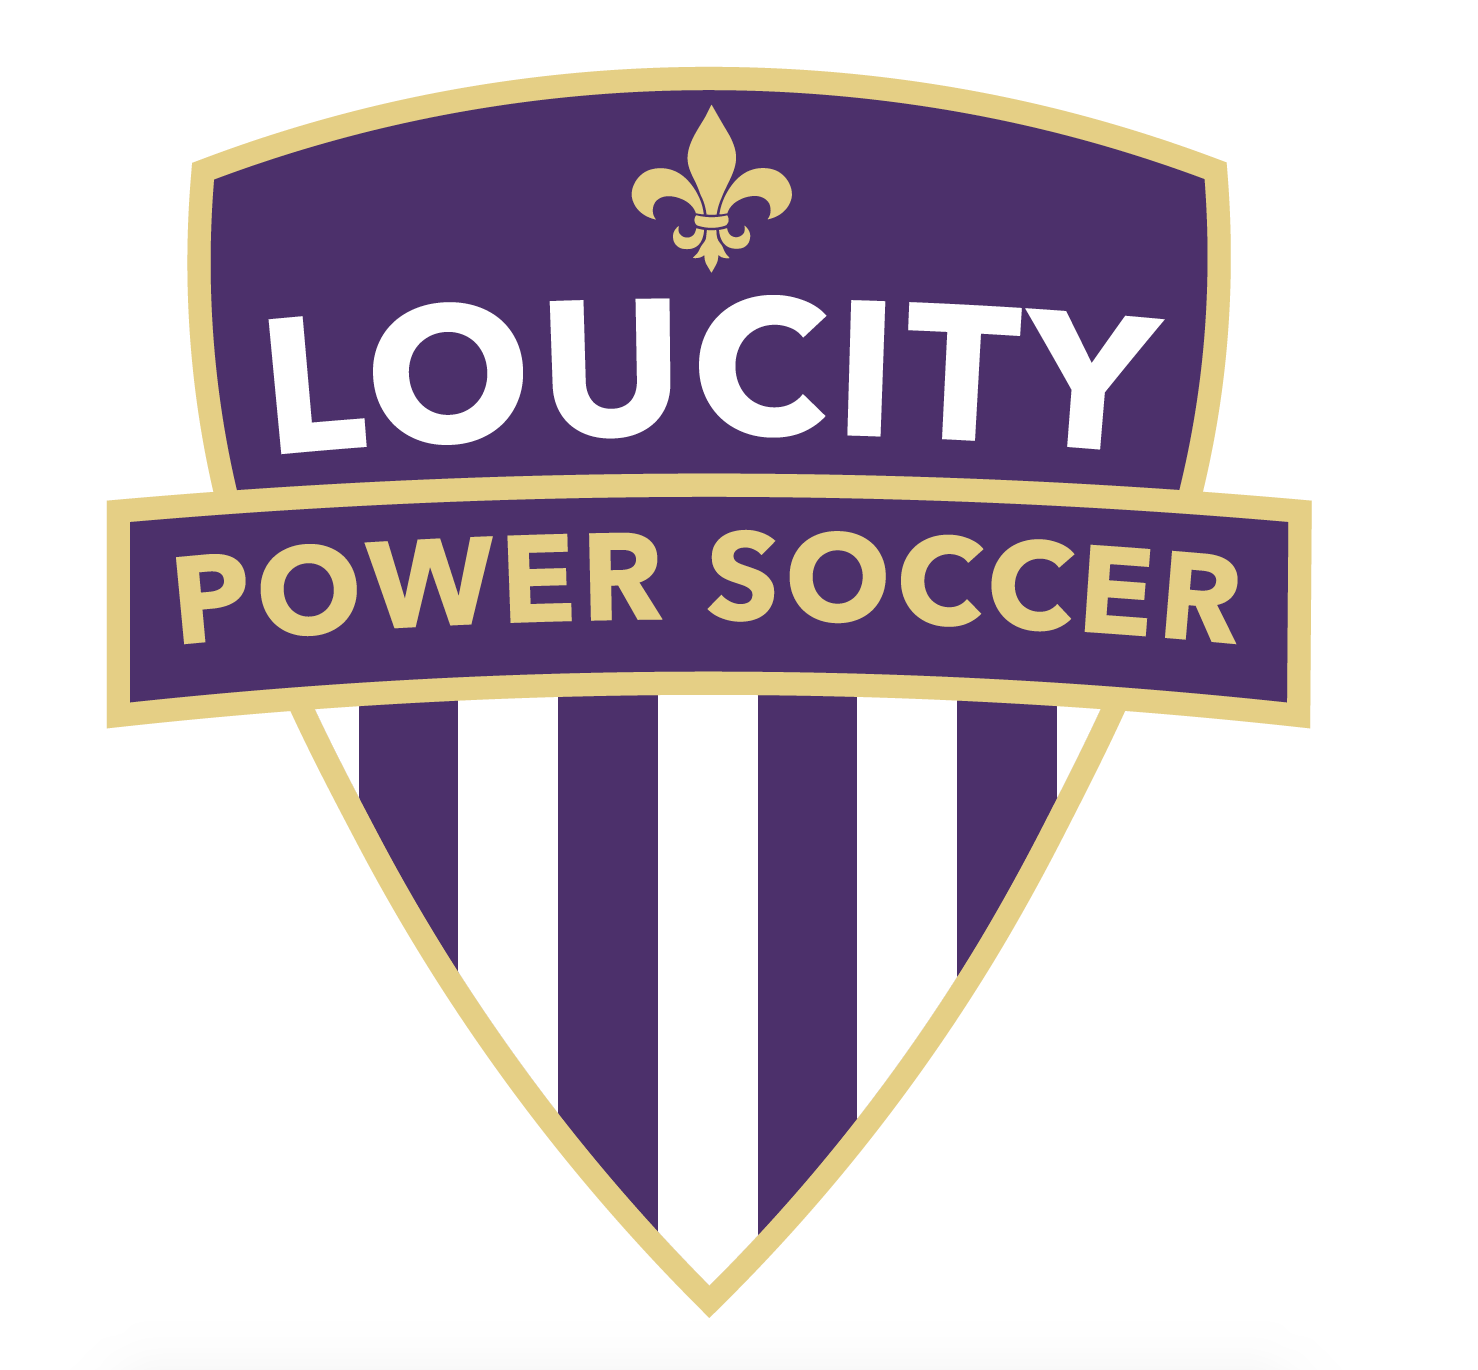 Lou City Power Soccer